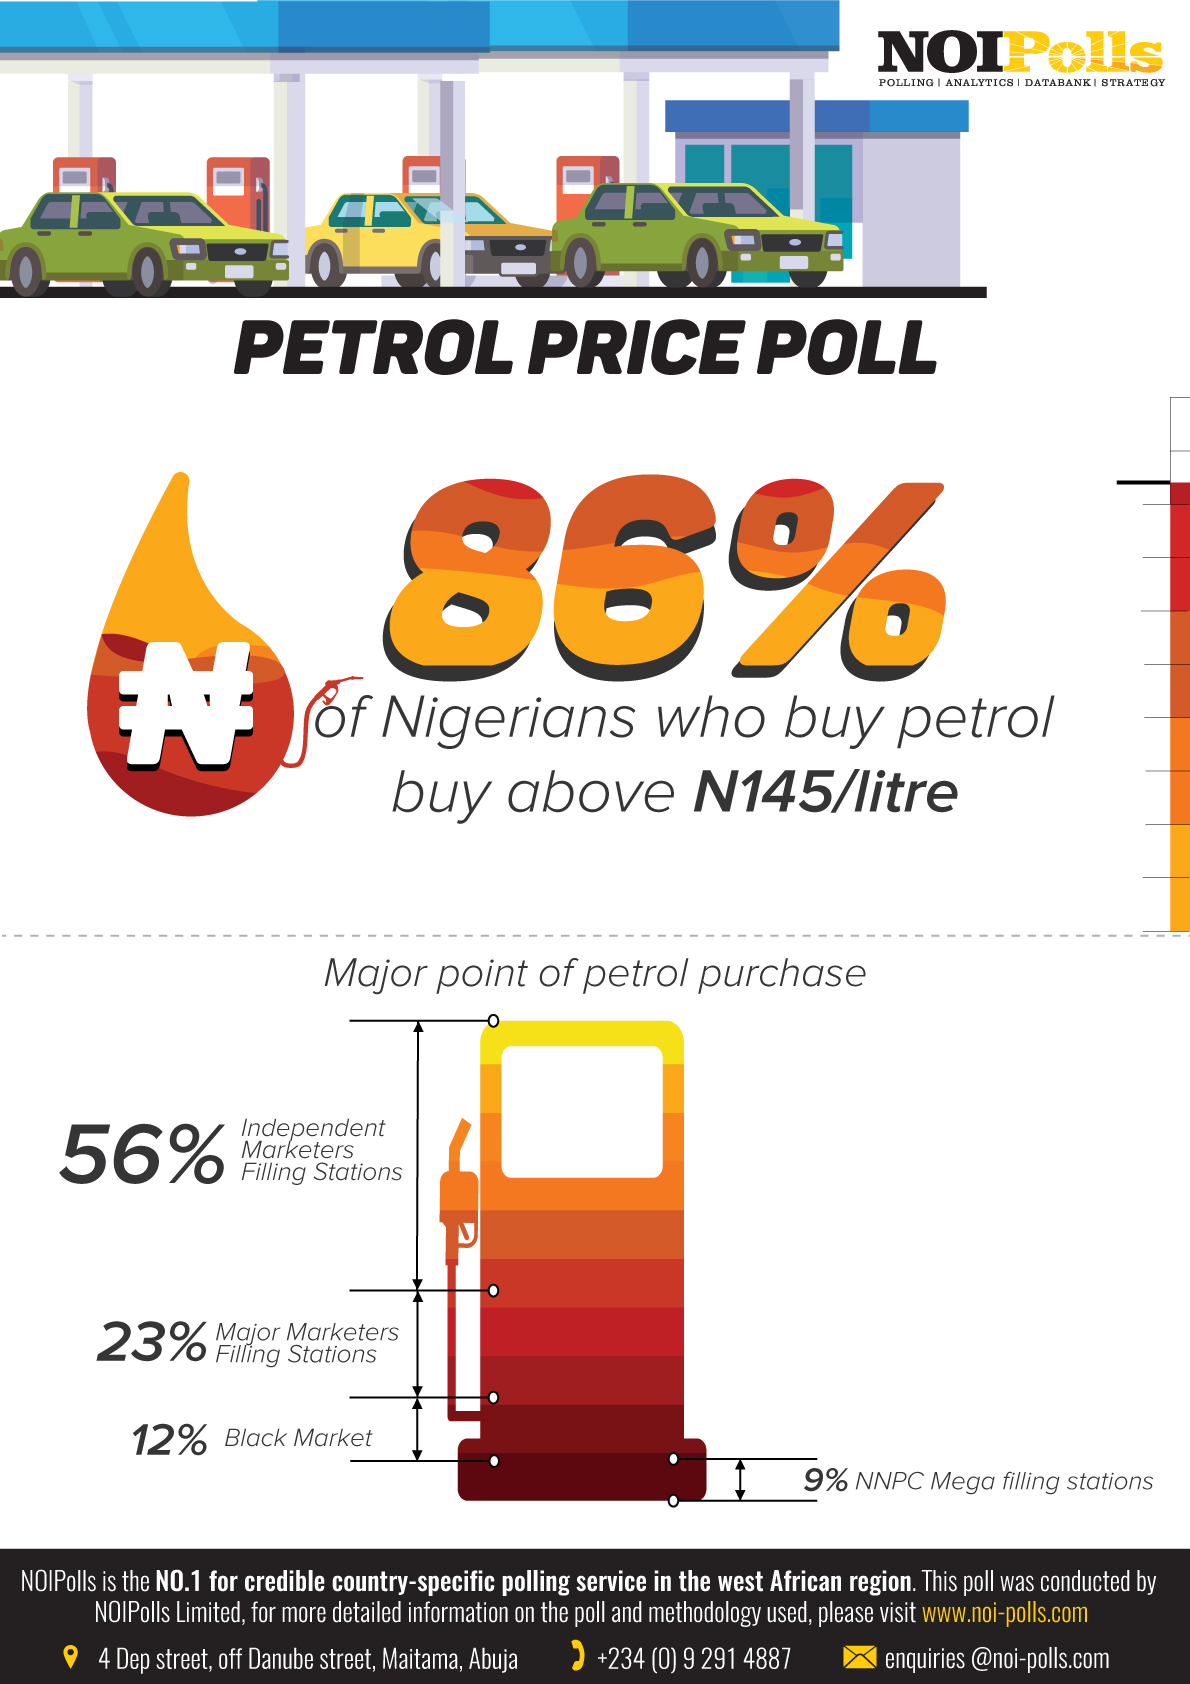 New Poll Reveals Urgent Need for More Petrol Price Monitoring Across the Nation, As 86% Nigerians Buy Above The Official Pump Price Per Liter - Brand Spur